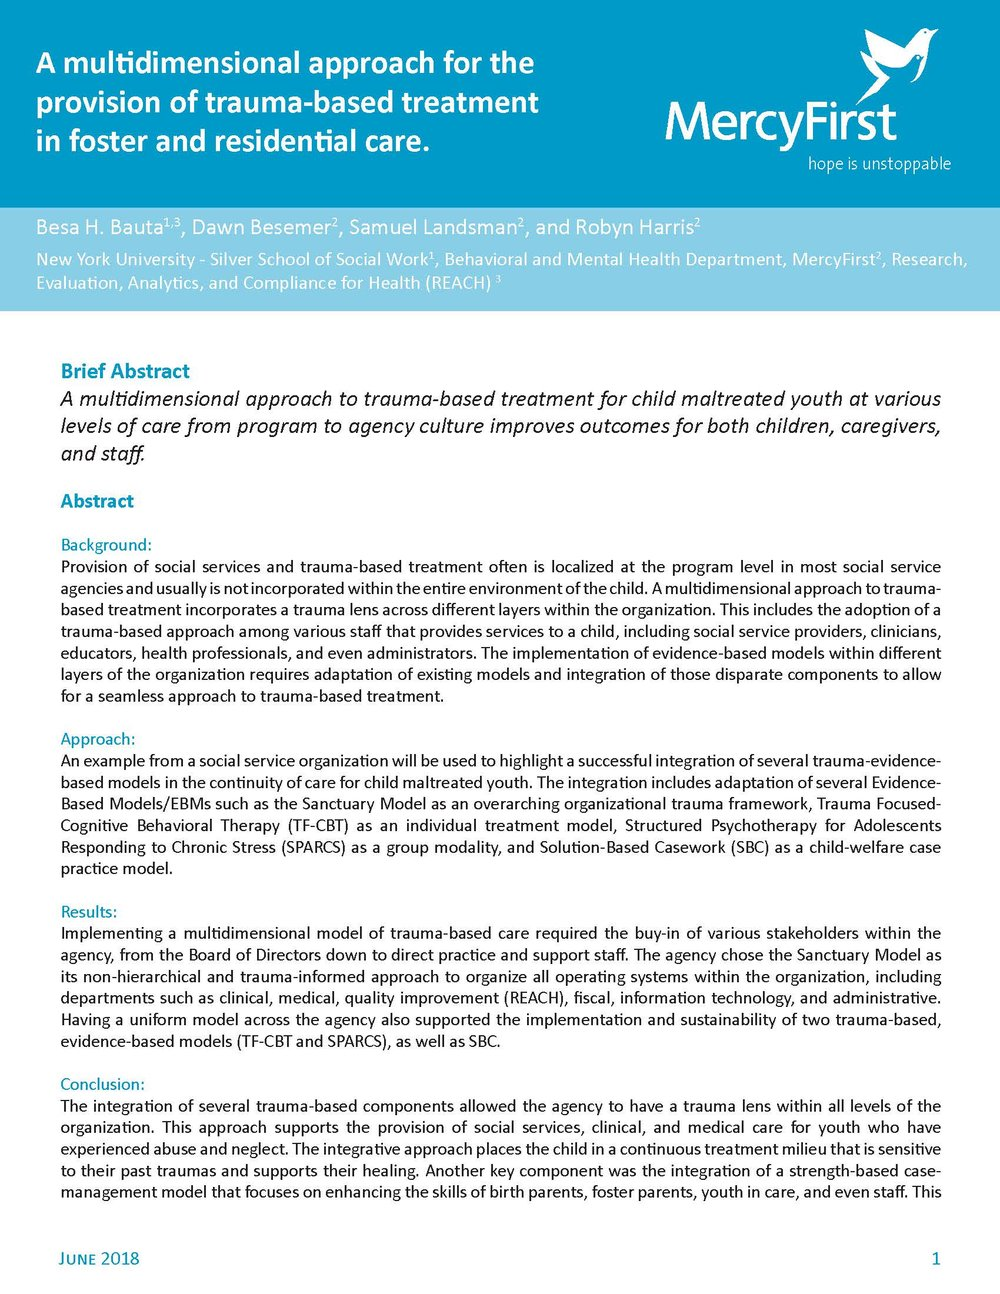 Abstract:  A multidimensional approach for the provision of trauma-based treatment in foster and residential care. B. Bauta, D. Besemer, S. Landsman, R. Harris